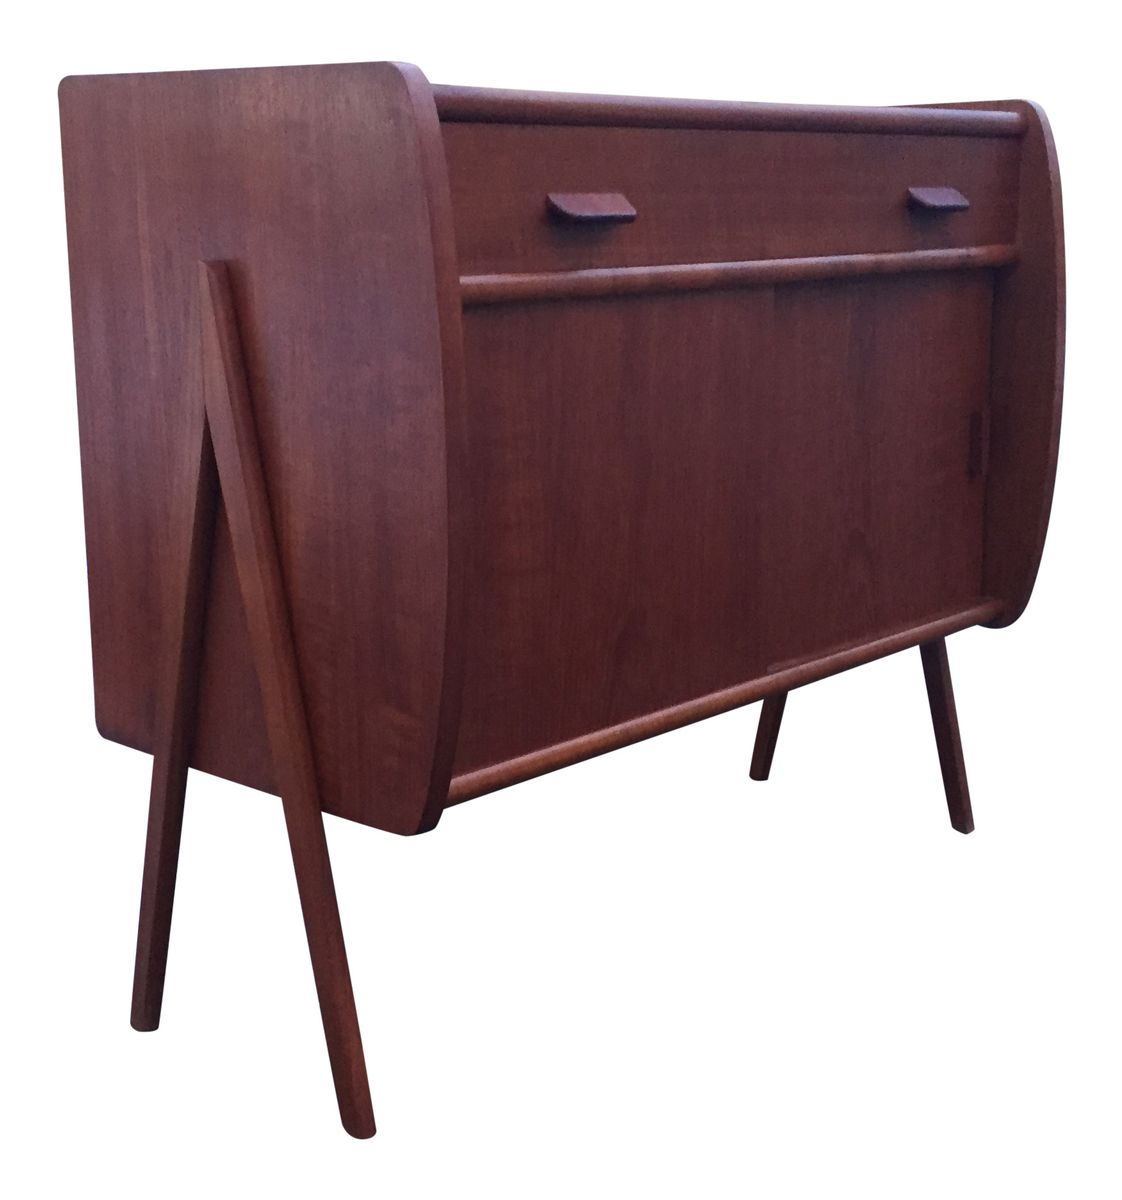 teak sideboard by poul m volther for fdb 1960s for sale. Black Bedroom Furniture Sets. Home Design Ideas